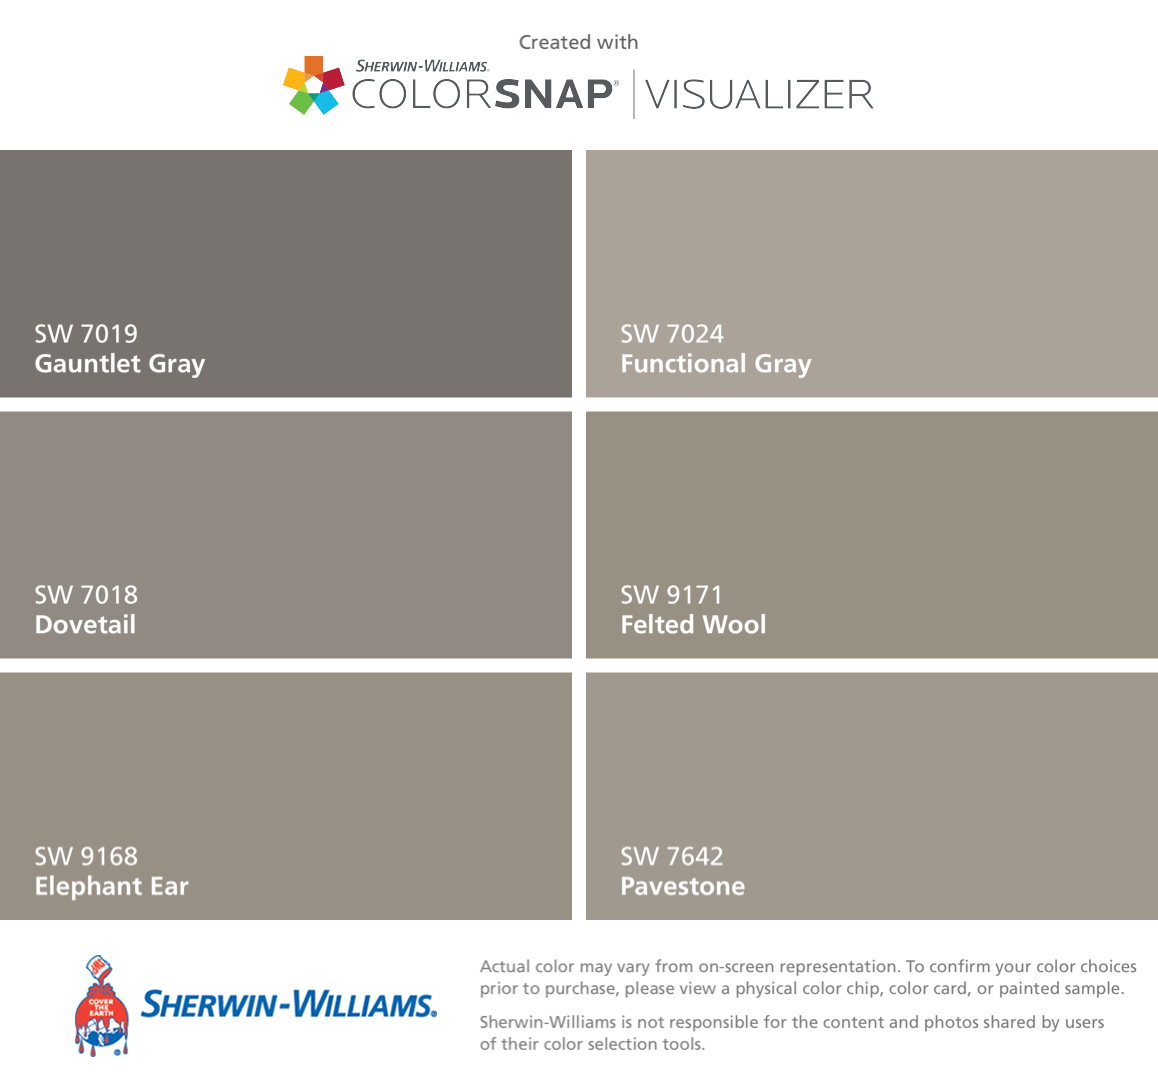 Sherwin Williams Gauntlet Gray SW 7019